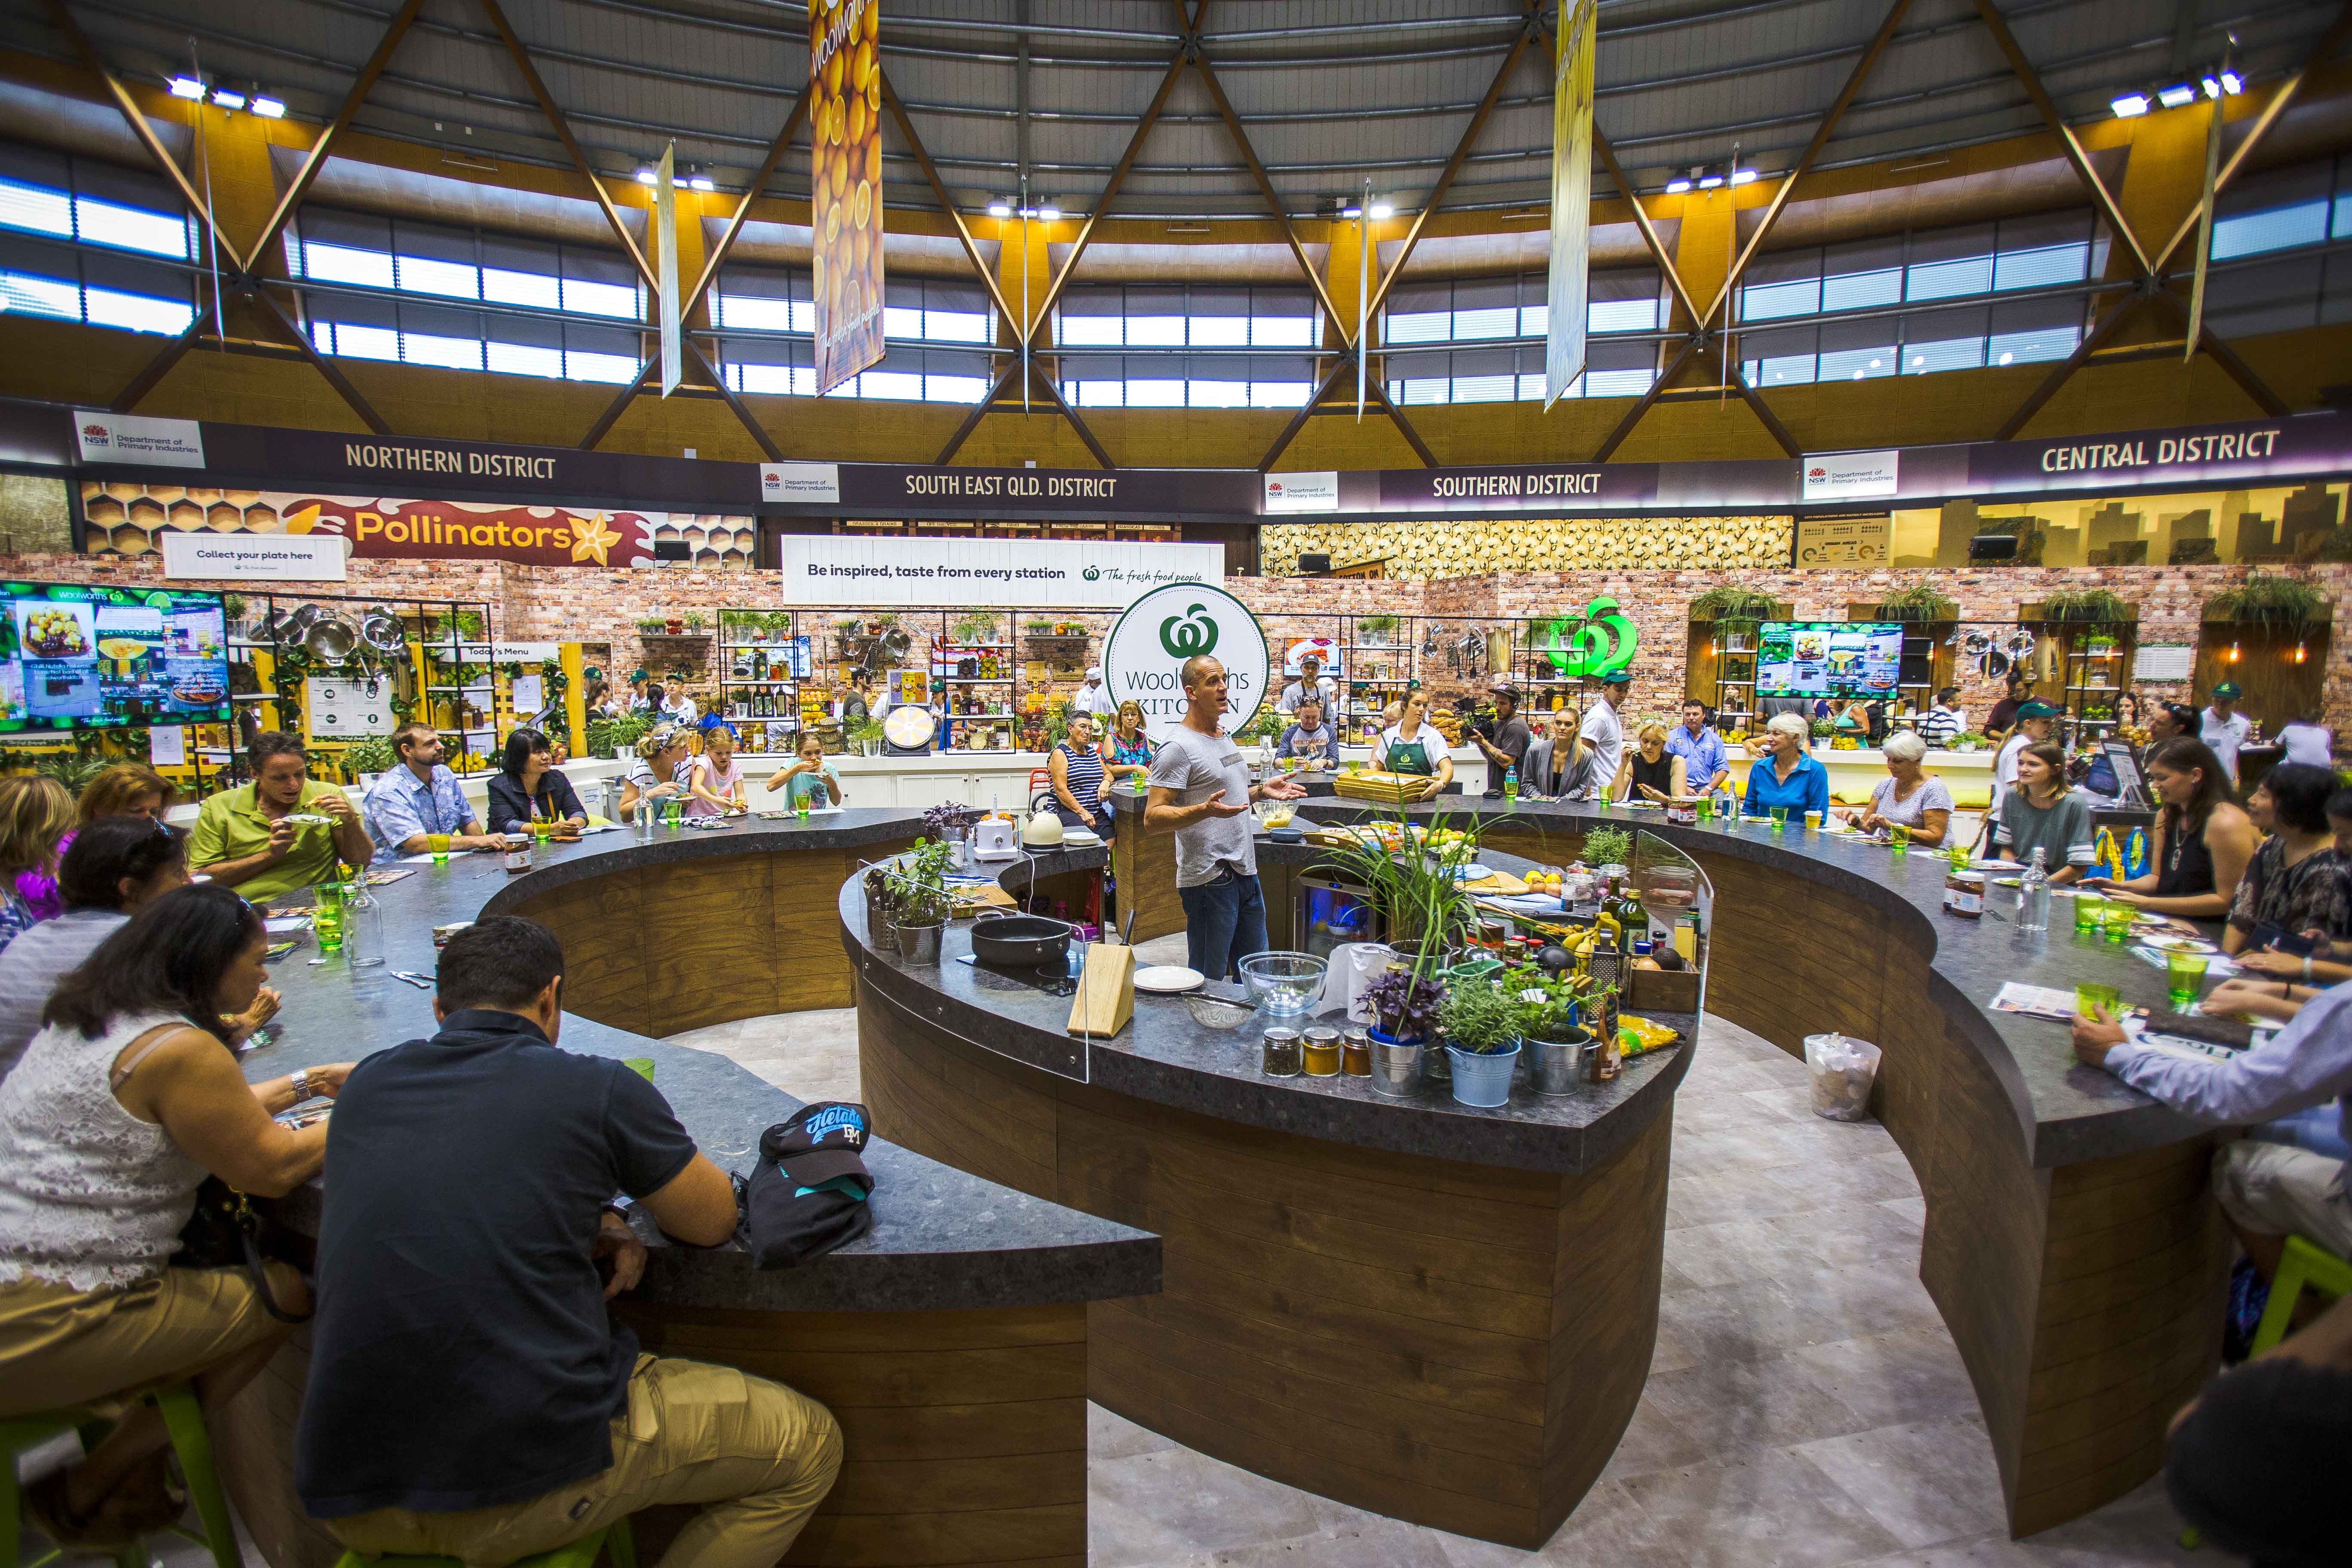 20160329_BEcause_Woolworths Royal Easter Show 2016-Web-1353